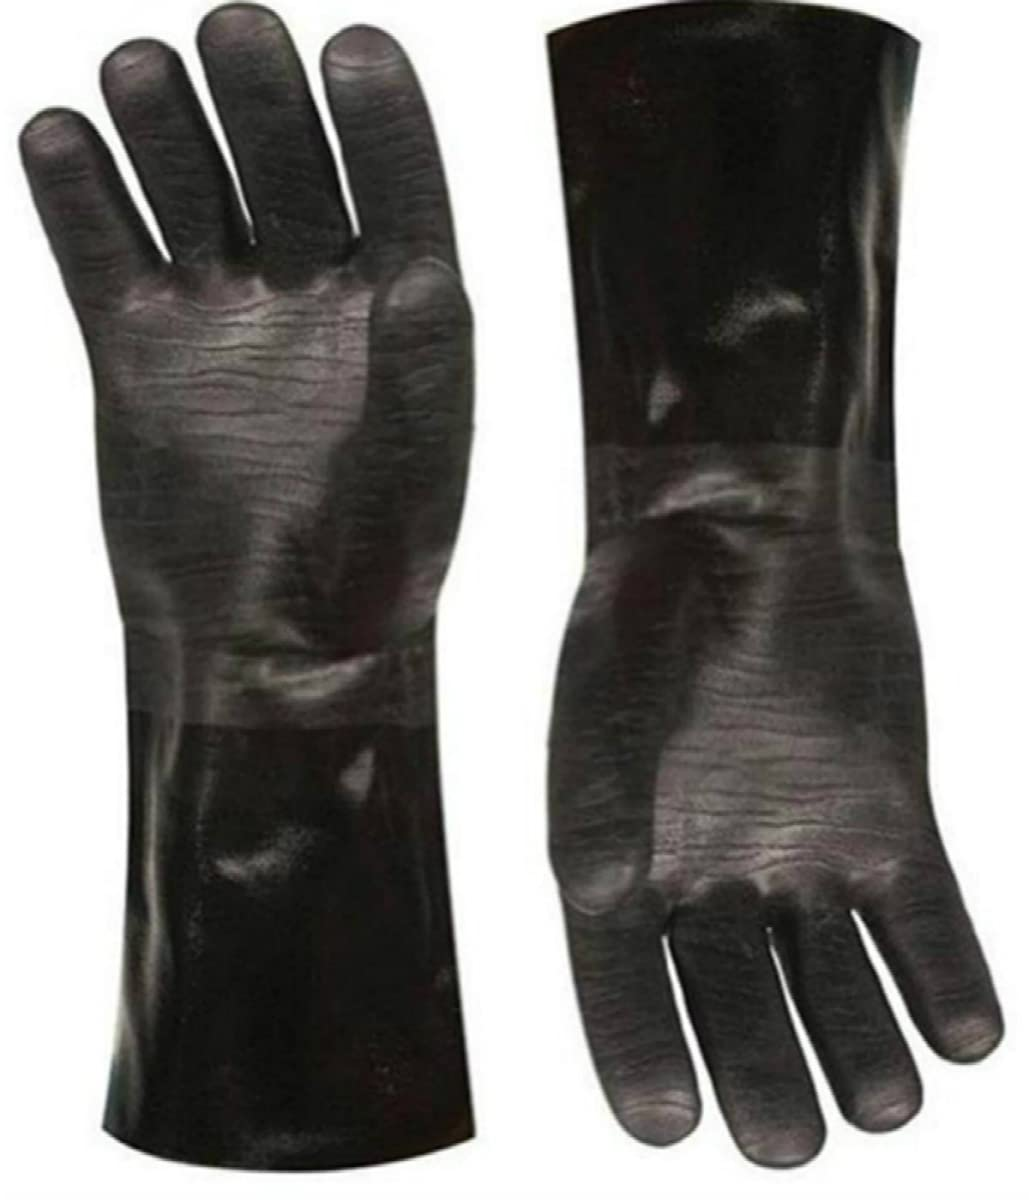 Artisan Griller Insulated waterproof / oil & heat resistant BBQ, Smoker, Grill, and Cooking Gloves. Great for barbecue & grilling -excellent gift -1 pair (14 Inch)